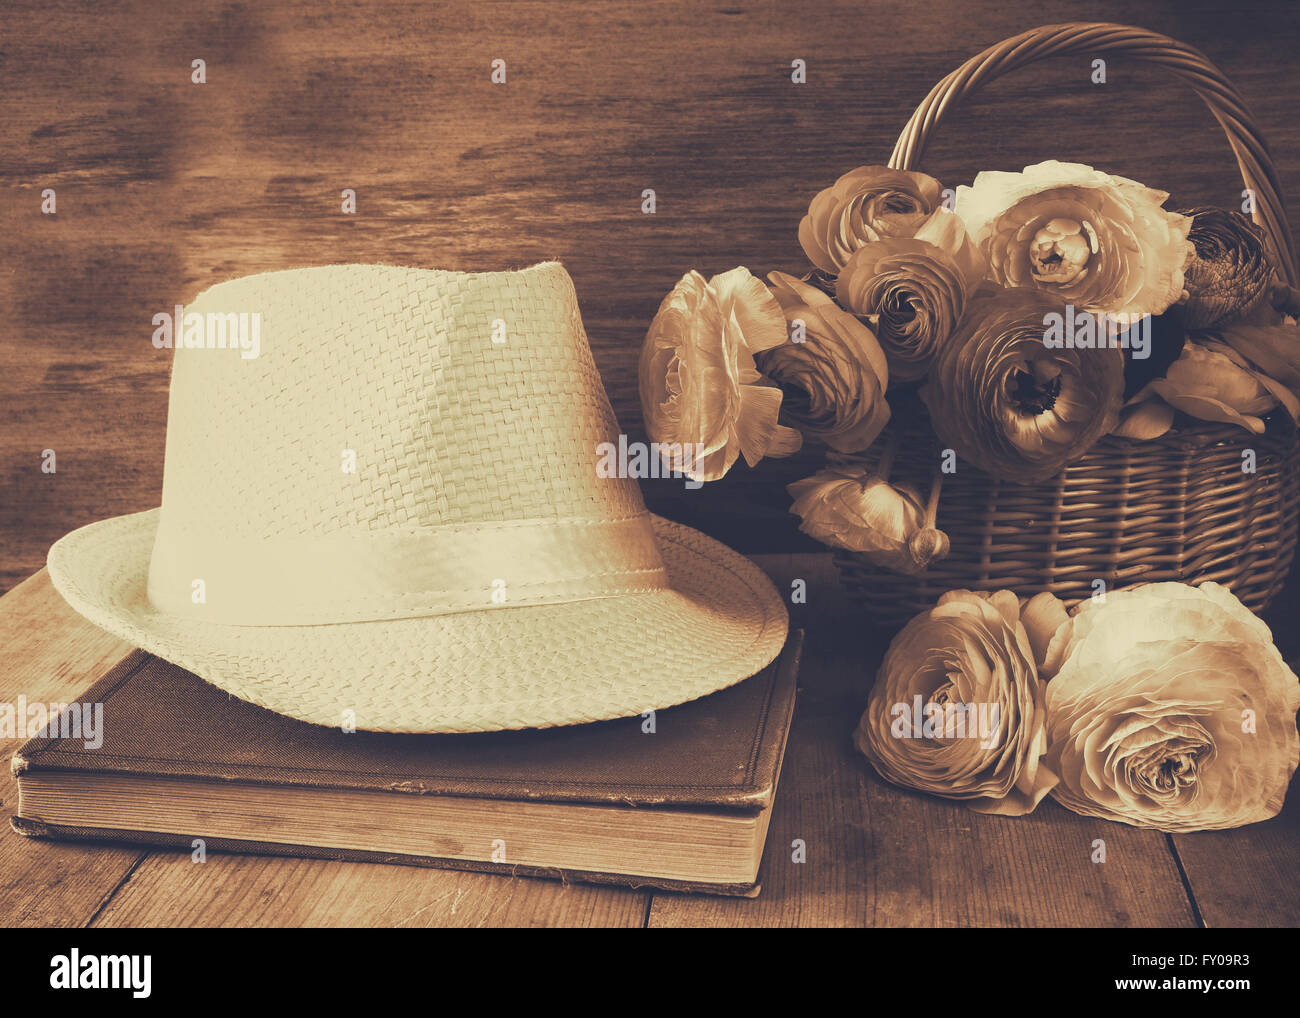 72fbb2ba23a64 fedora hat next to old book and flowers on wooden table. sepia vintage  filtered